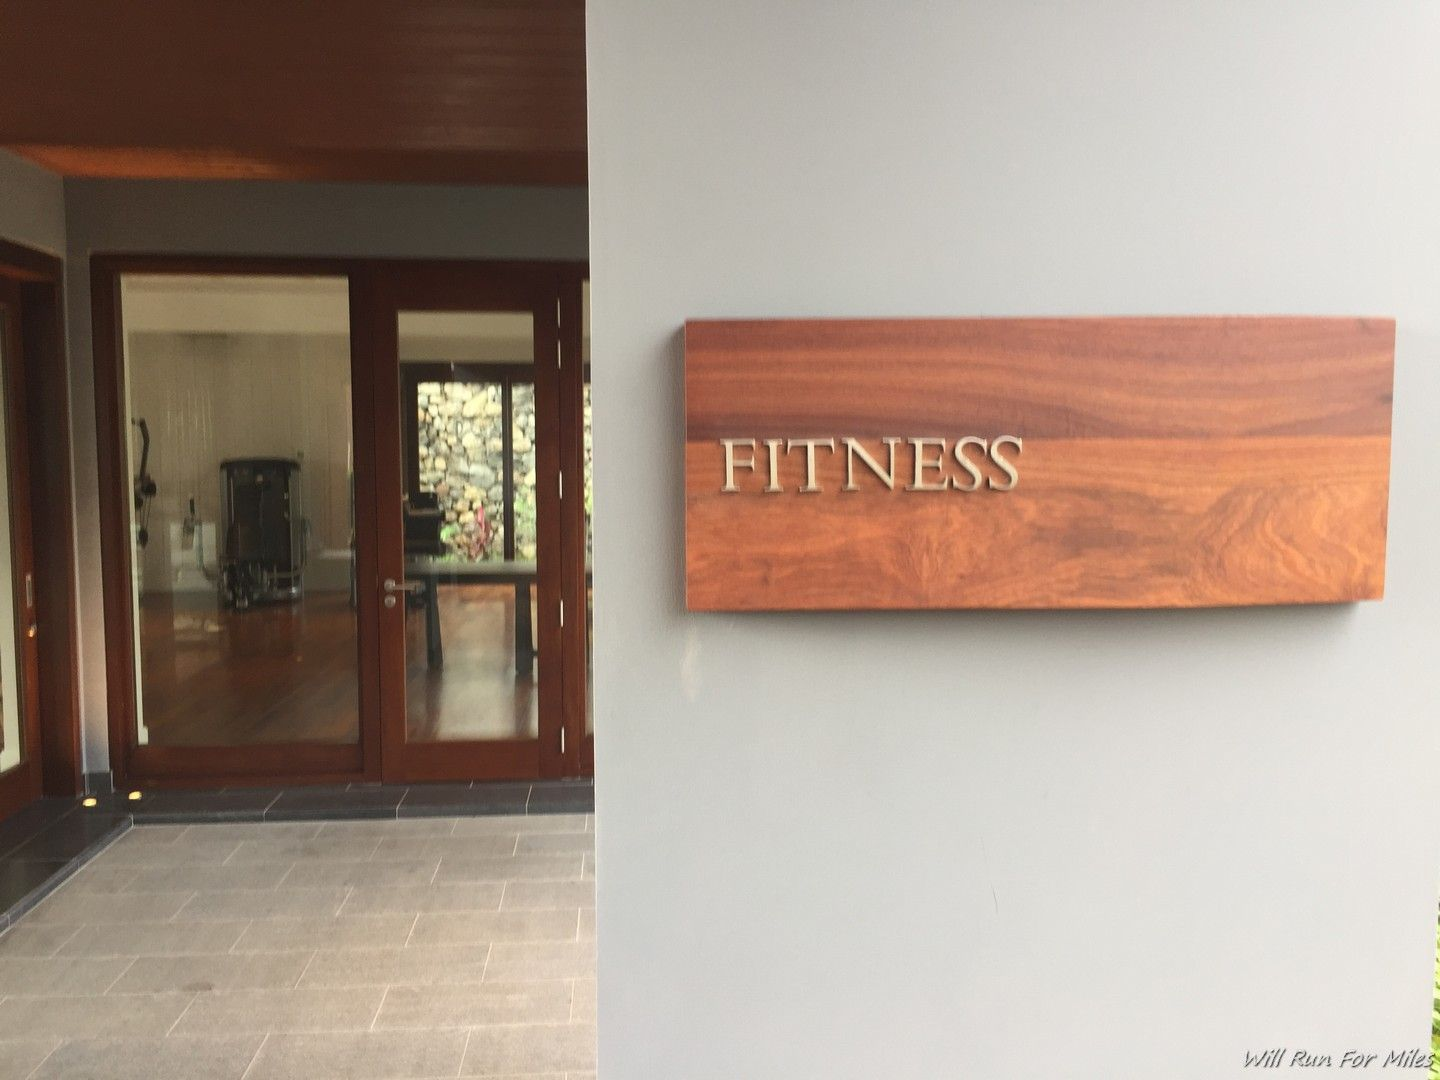 [Gimnasio del hotel] Park Hyatt St. Kitts - willrunformiles.b ...  Informations About Working Out -...